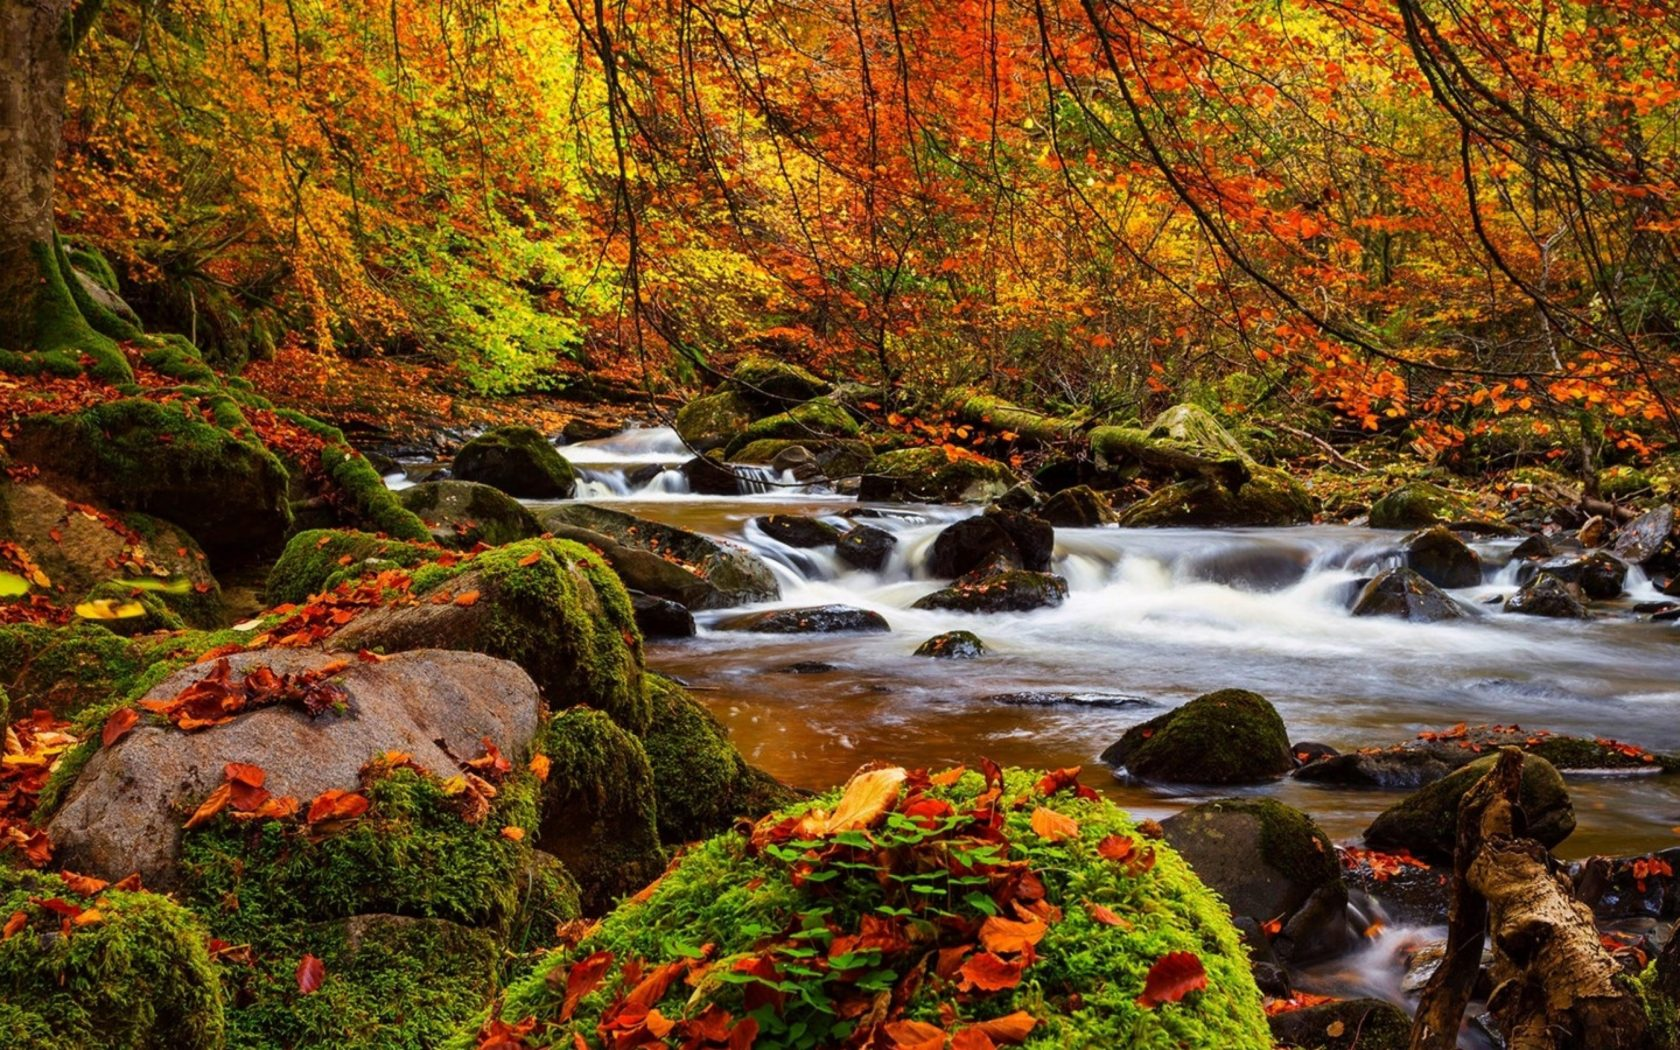 Falling Leaves Wallpaper For Iphone Fall Forest Stream Stones Moss Trees Ultra 3840x2160